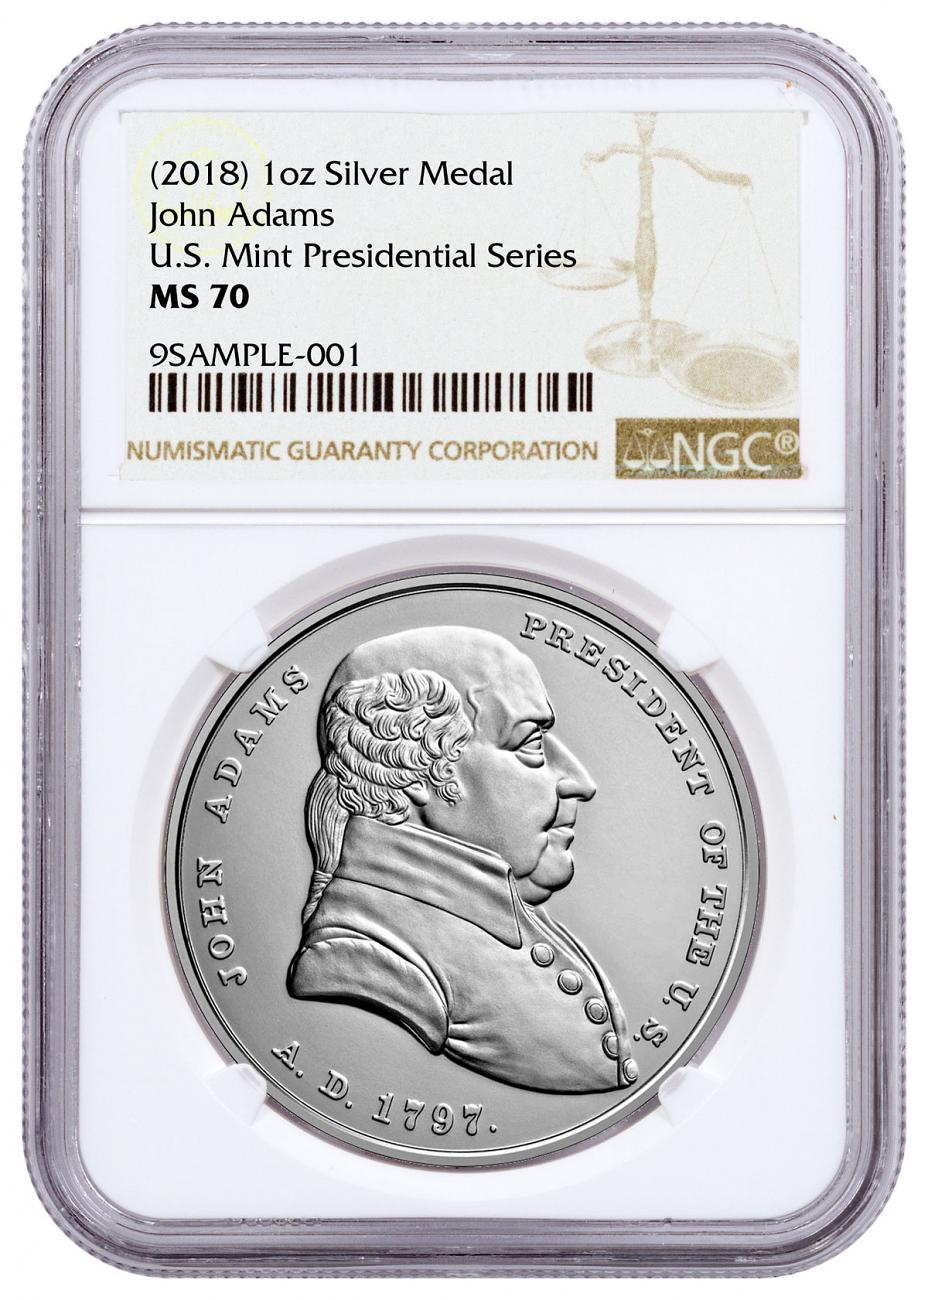 1797-2018 United States Presidential Medal John Adams 1 oz Silver Matte Medal NGC MS70